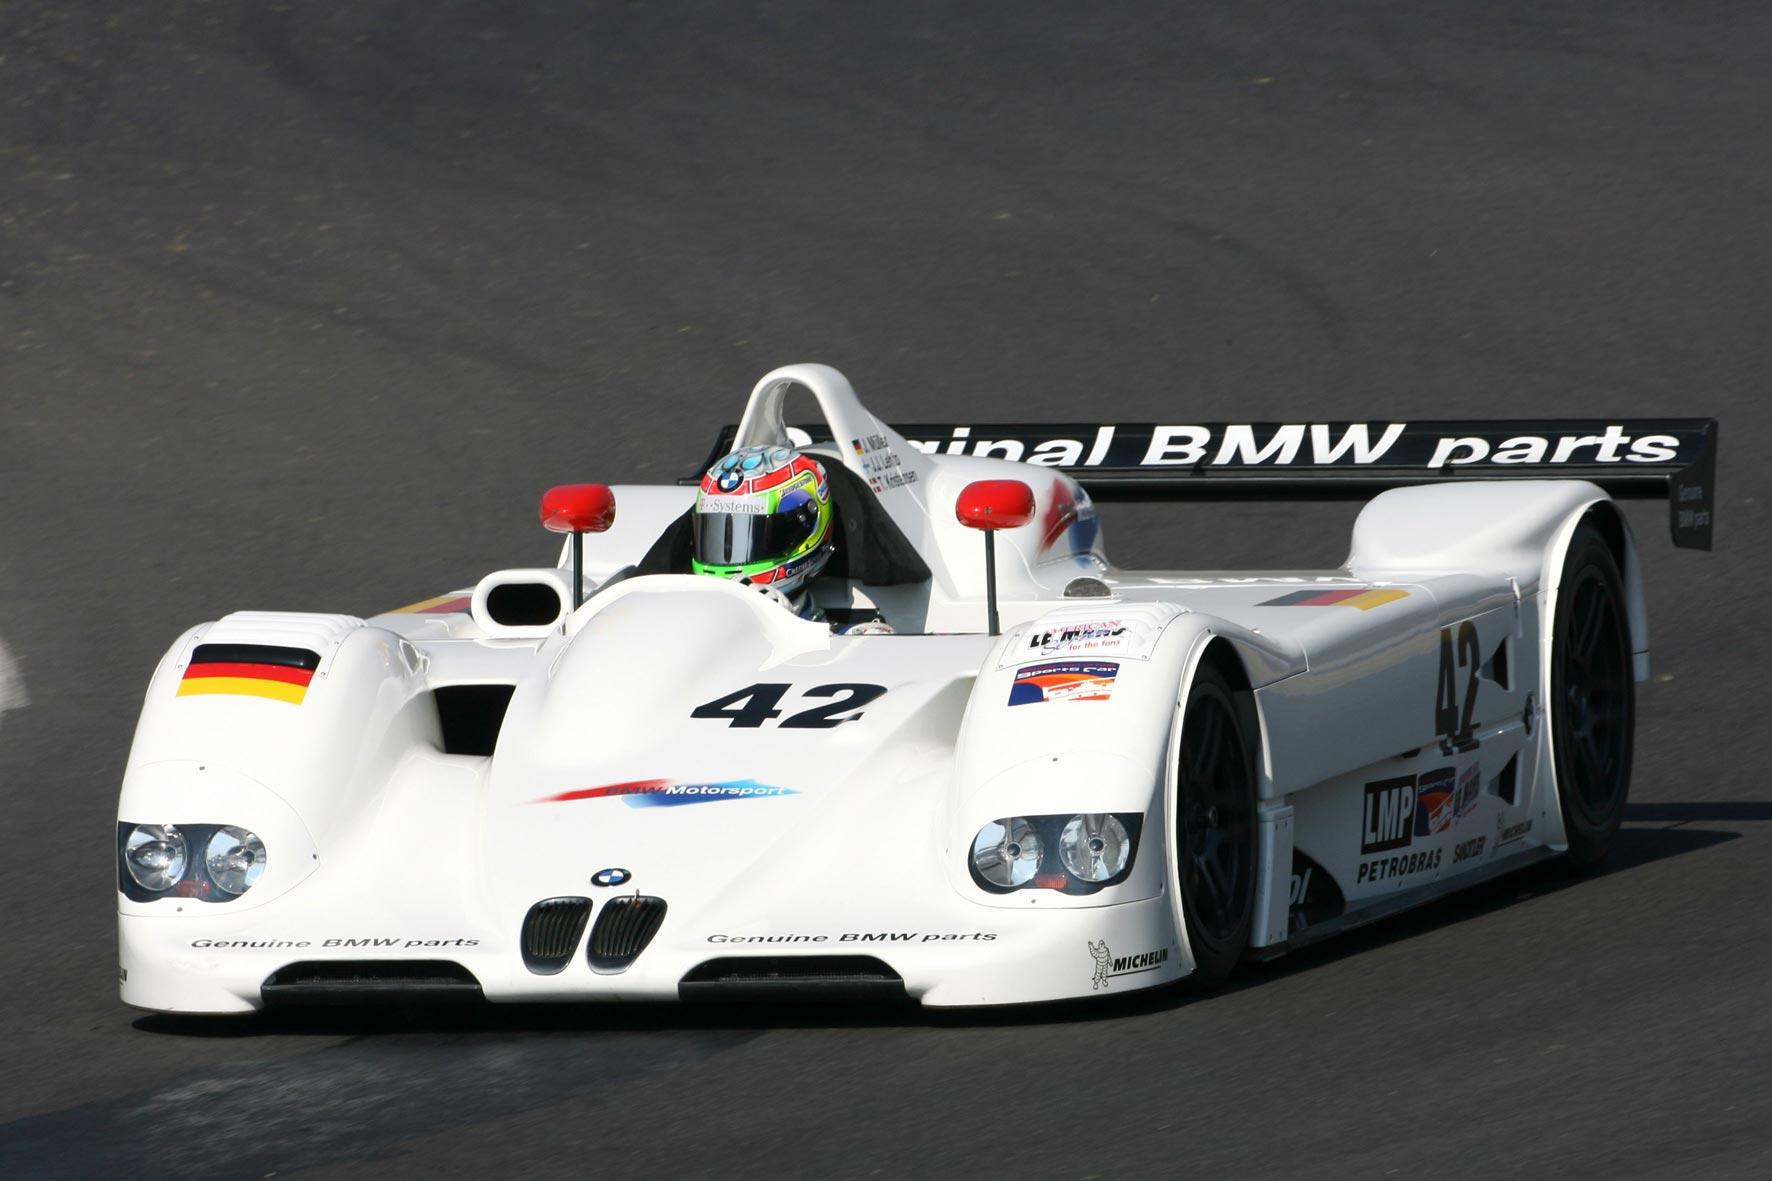 BMW V12 LMR specs, lap times, performance data - FastestLaps.com